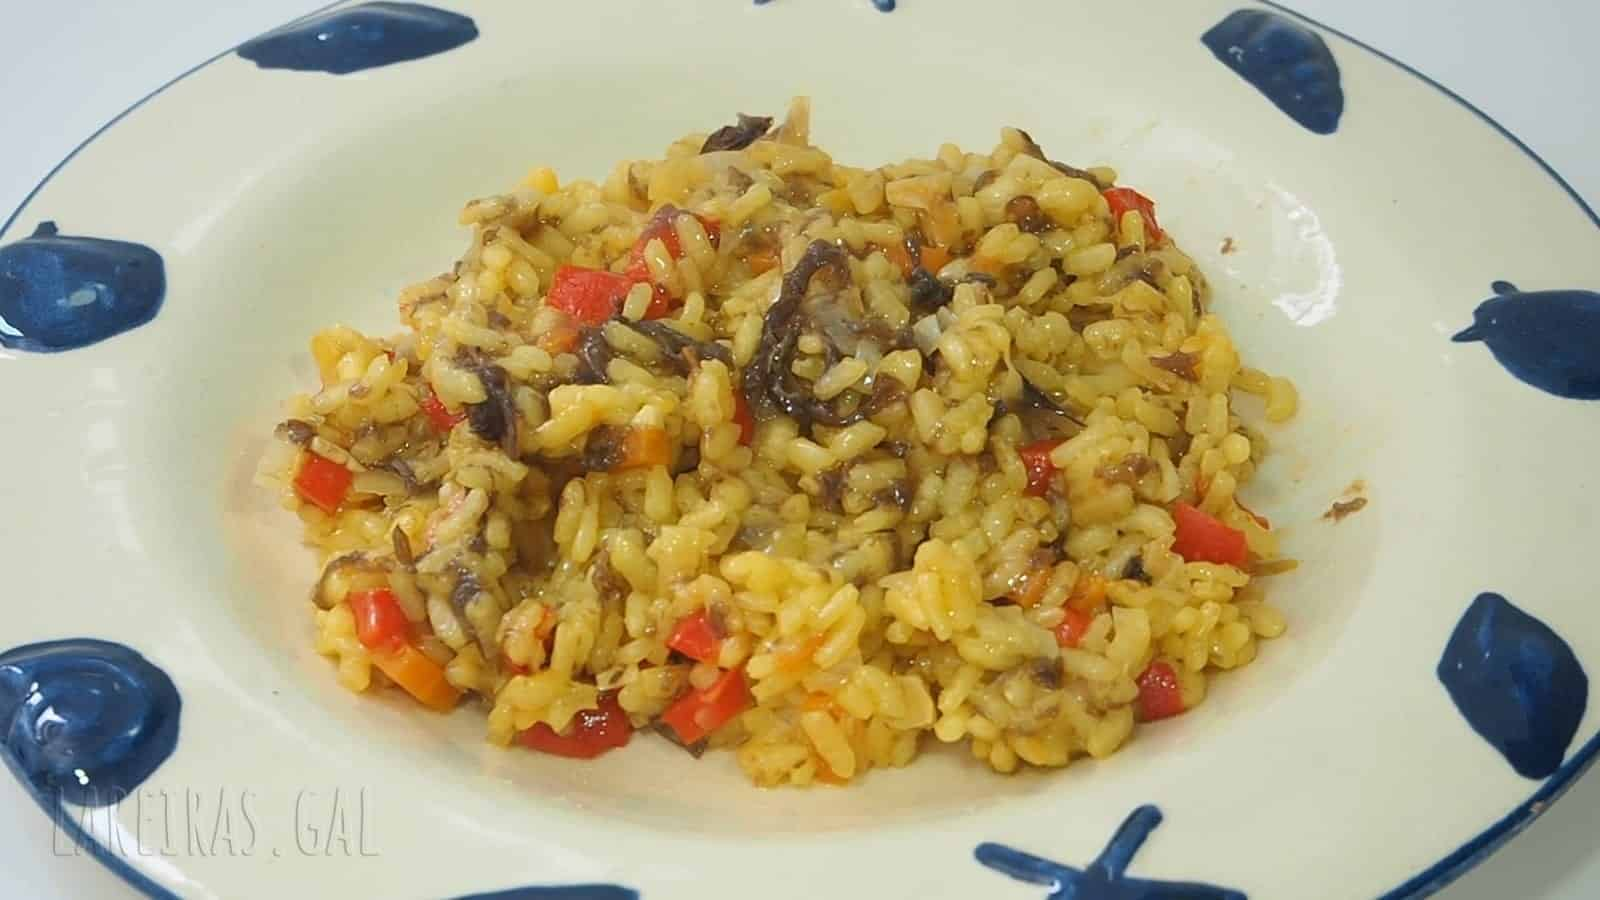 Arroz con algas